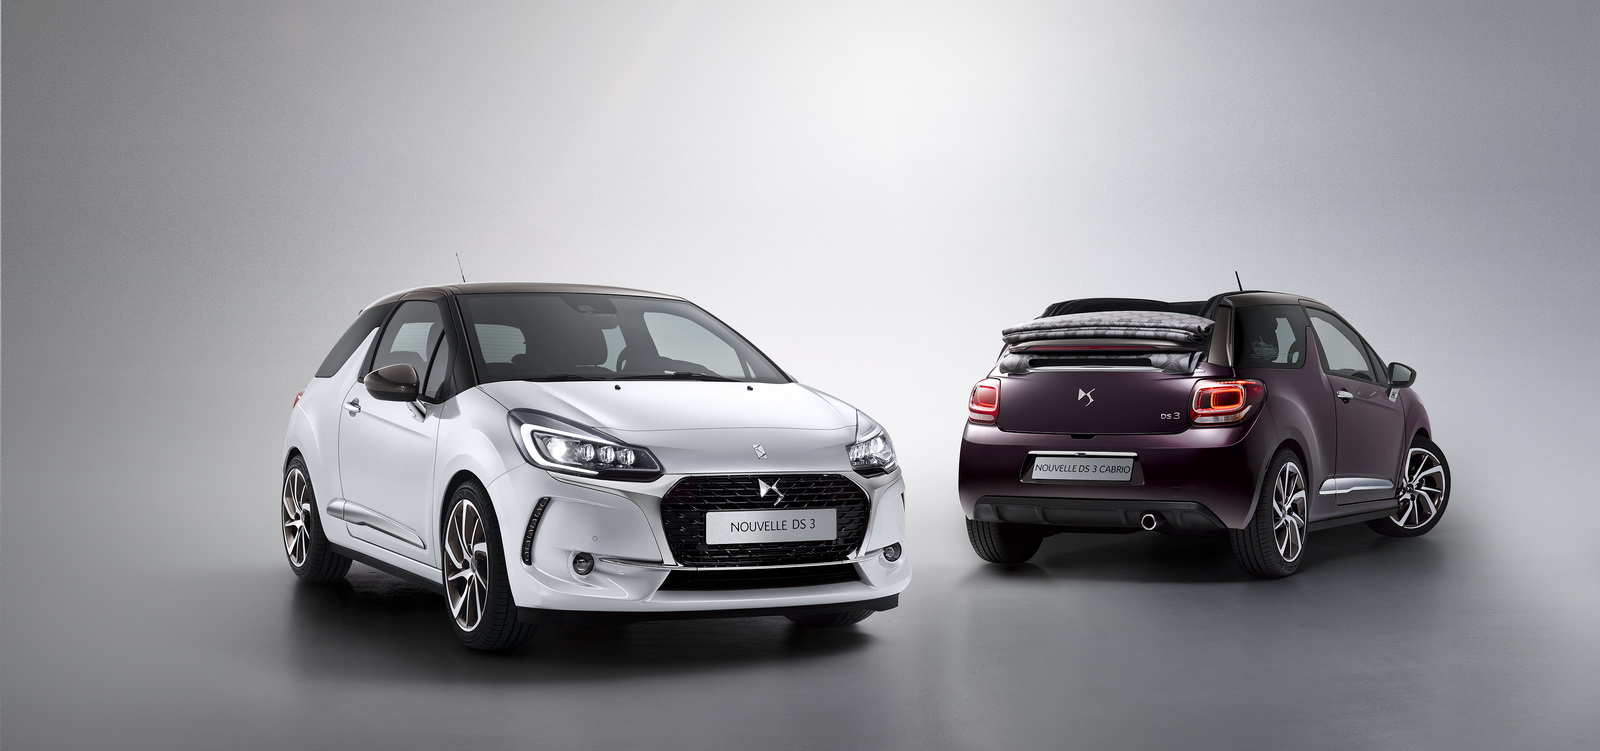 La DS 3 modernisée, adieu les chevrons ! - Photo n°5